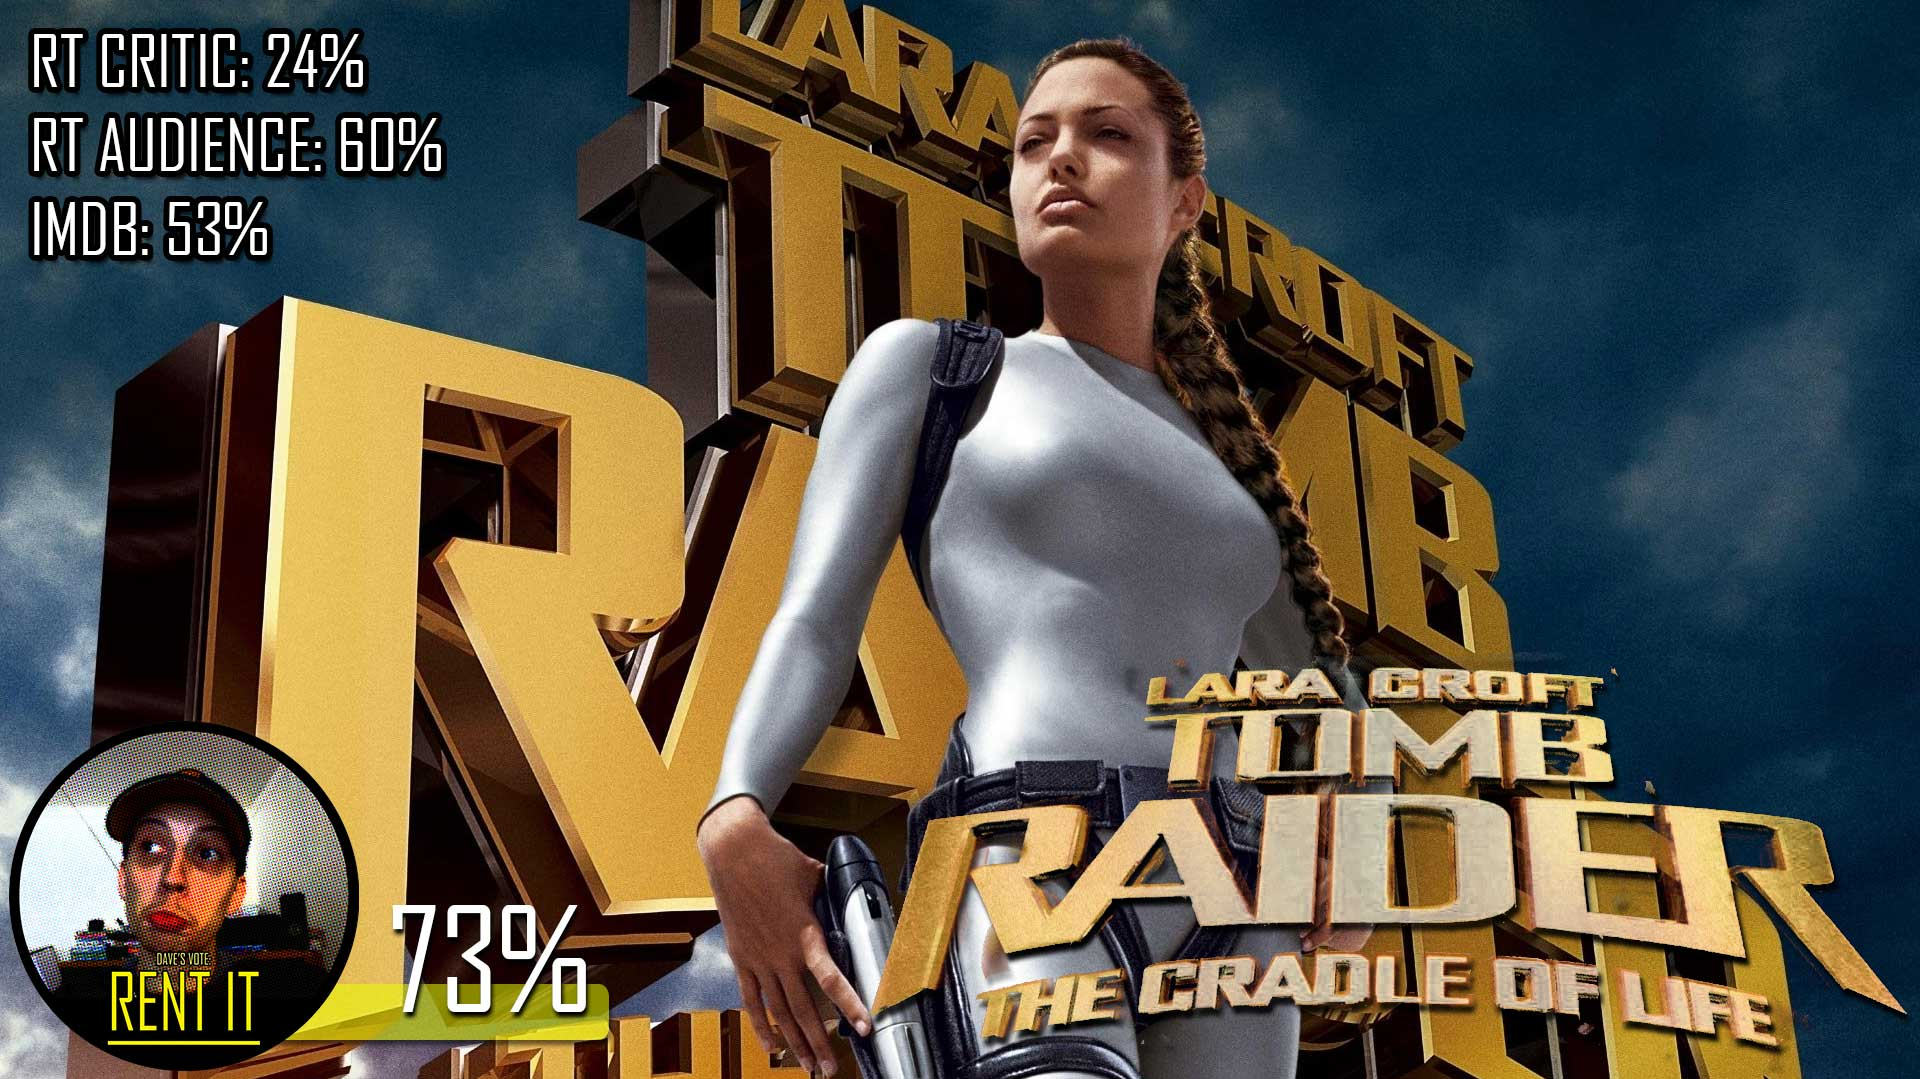 Lara Croft Tomb Raider The Cradle Of Life Wallpapers Movie Hq Lara Croft Tomb Raider The Cradle Of Life Pictures 4k Wallpapers 2019